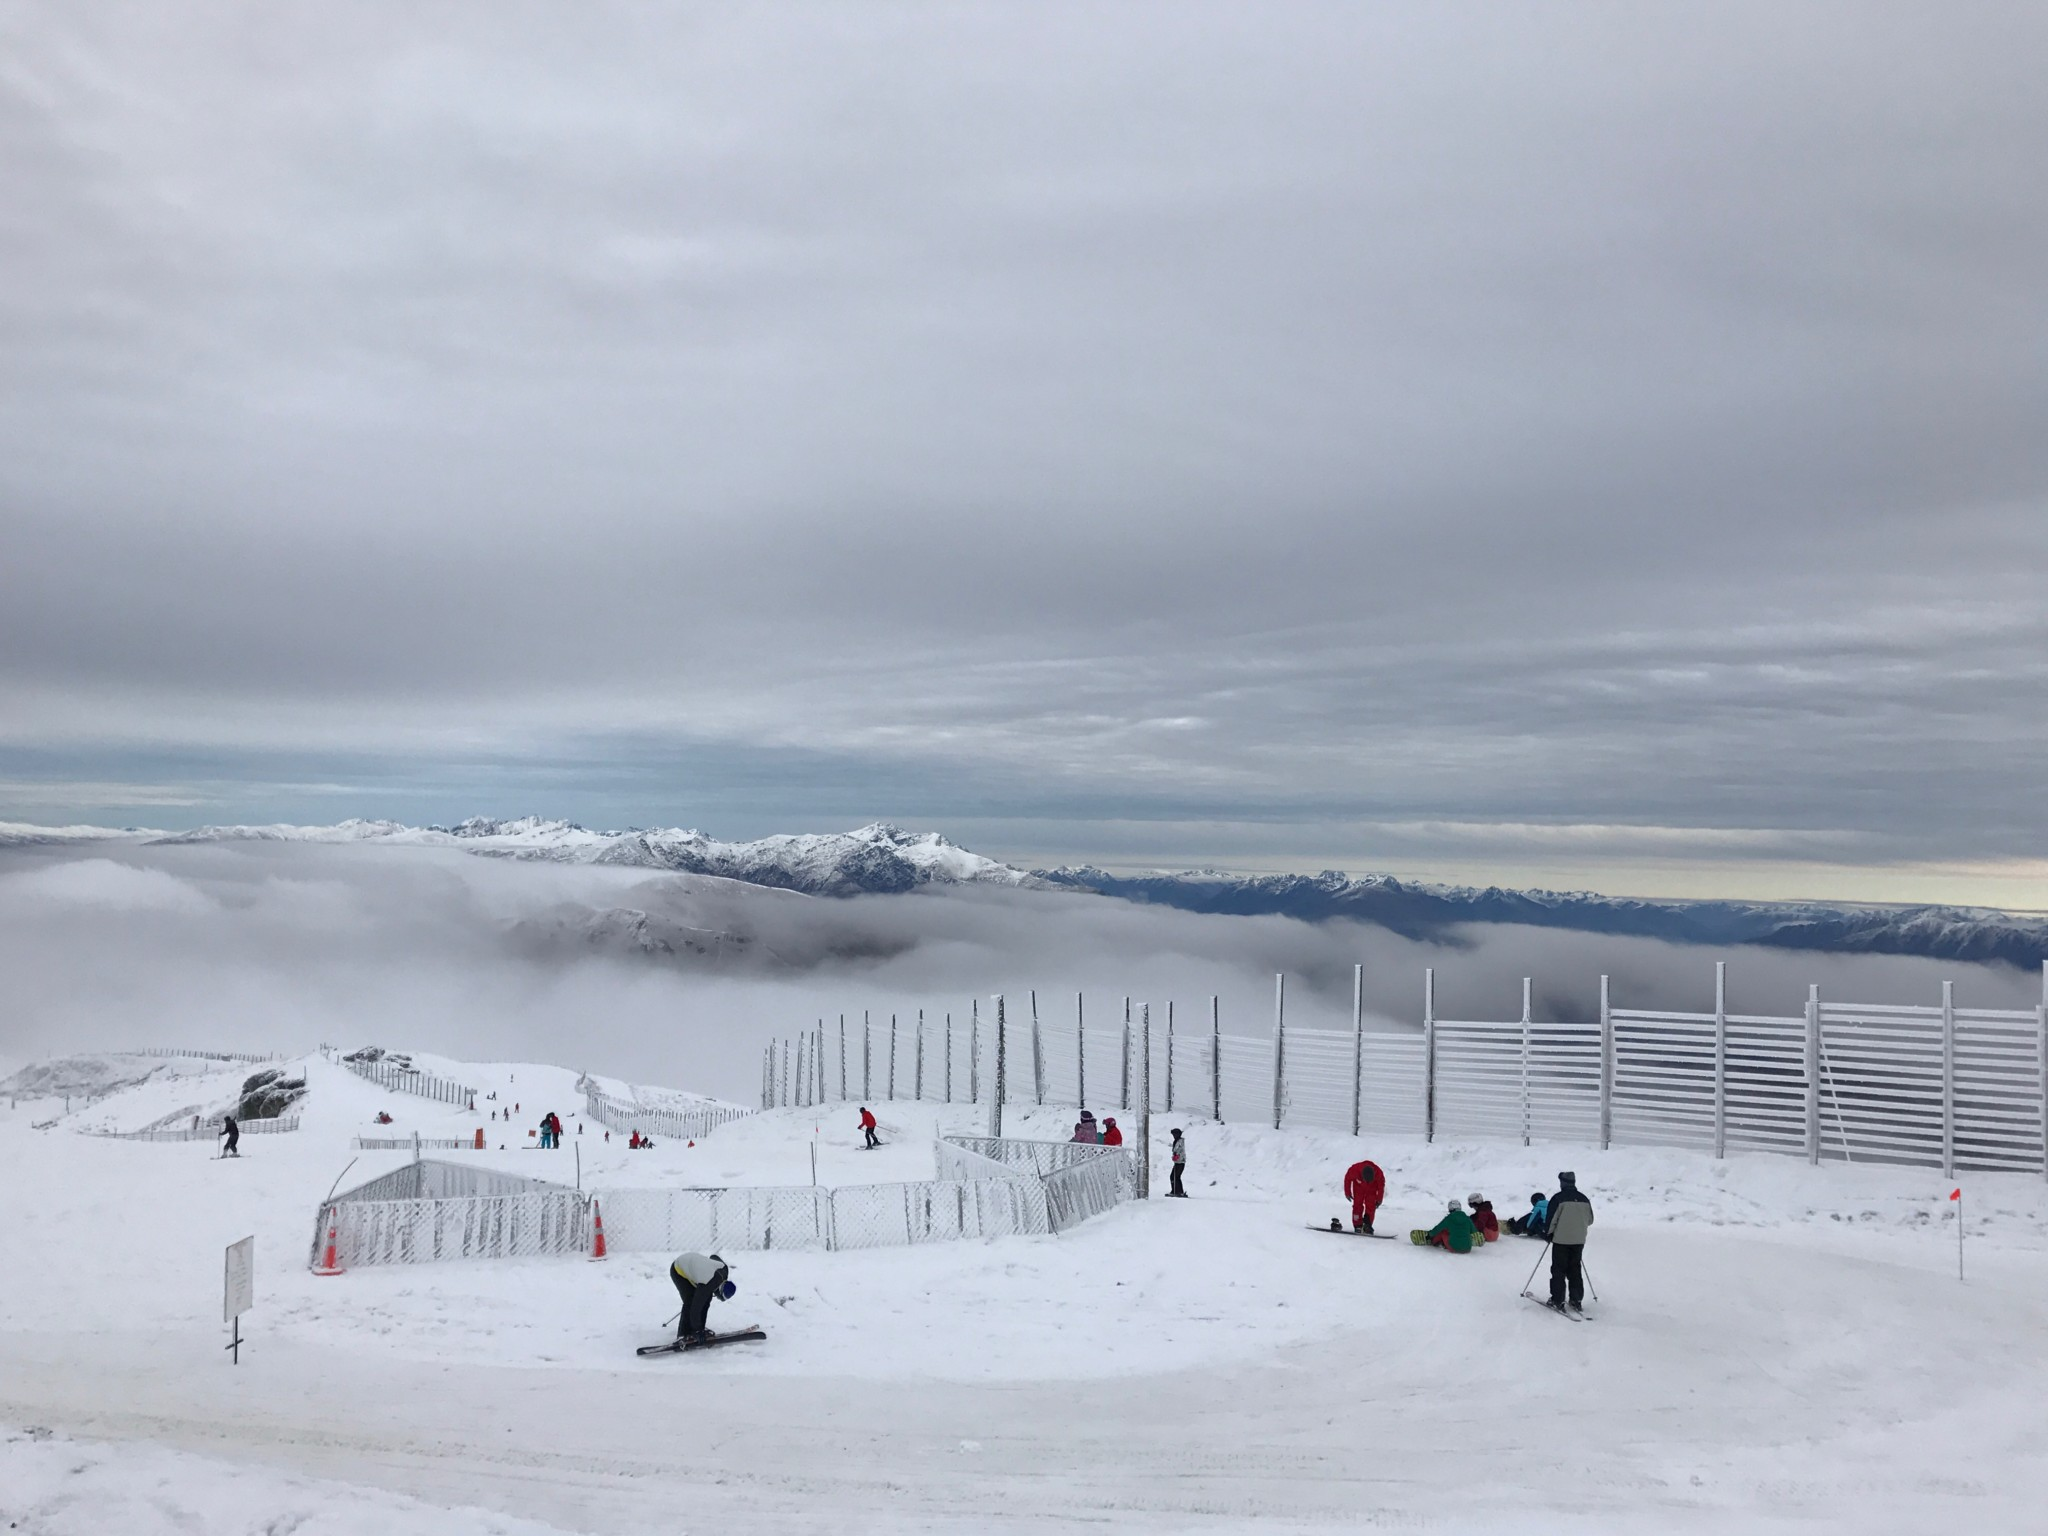 Perfect setting for a day of skiing at Cardrona